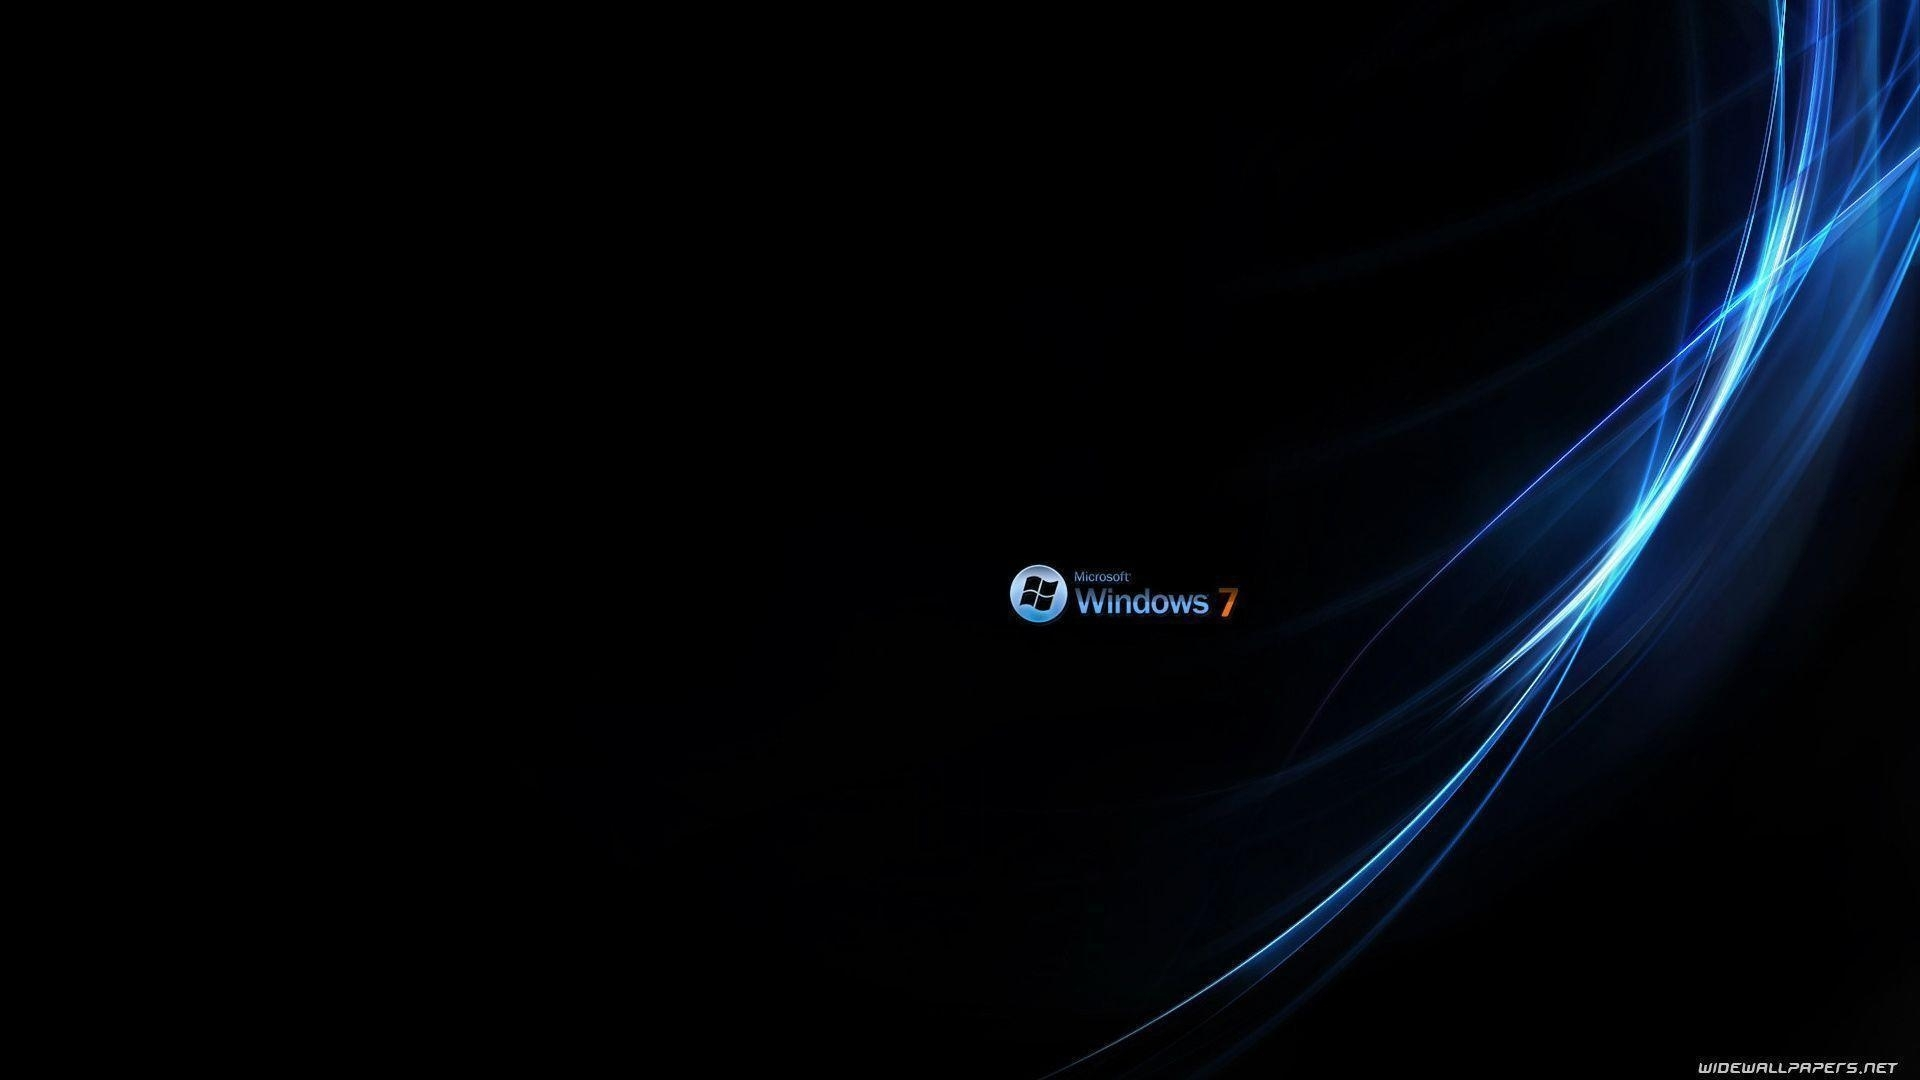 windows 7 wallpapers 1920x1080 - wallpaper cave